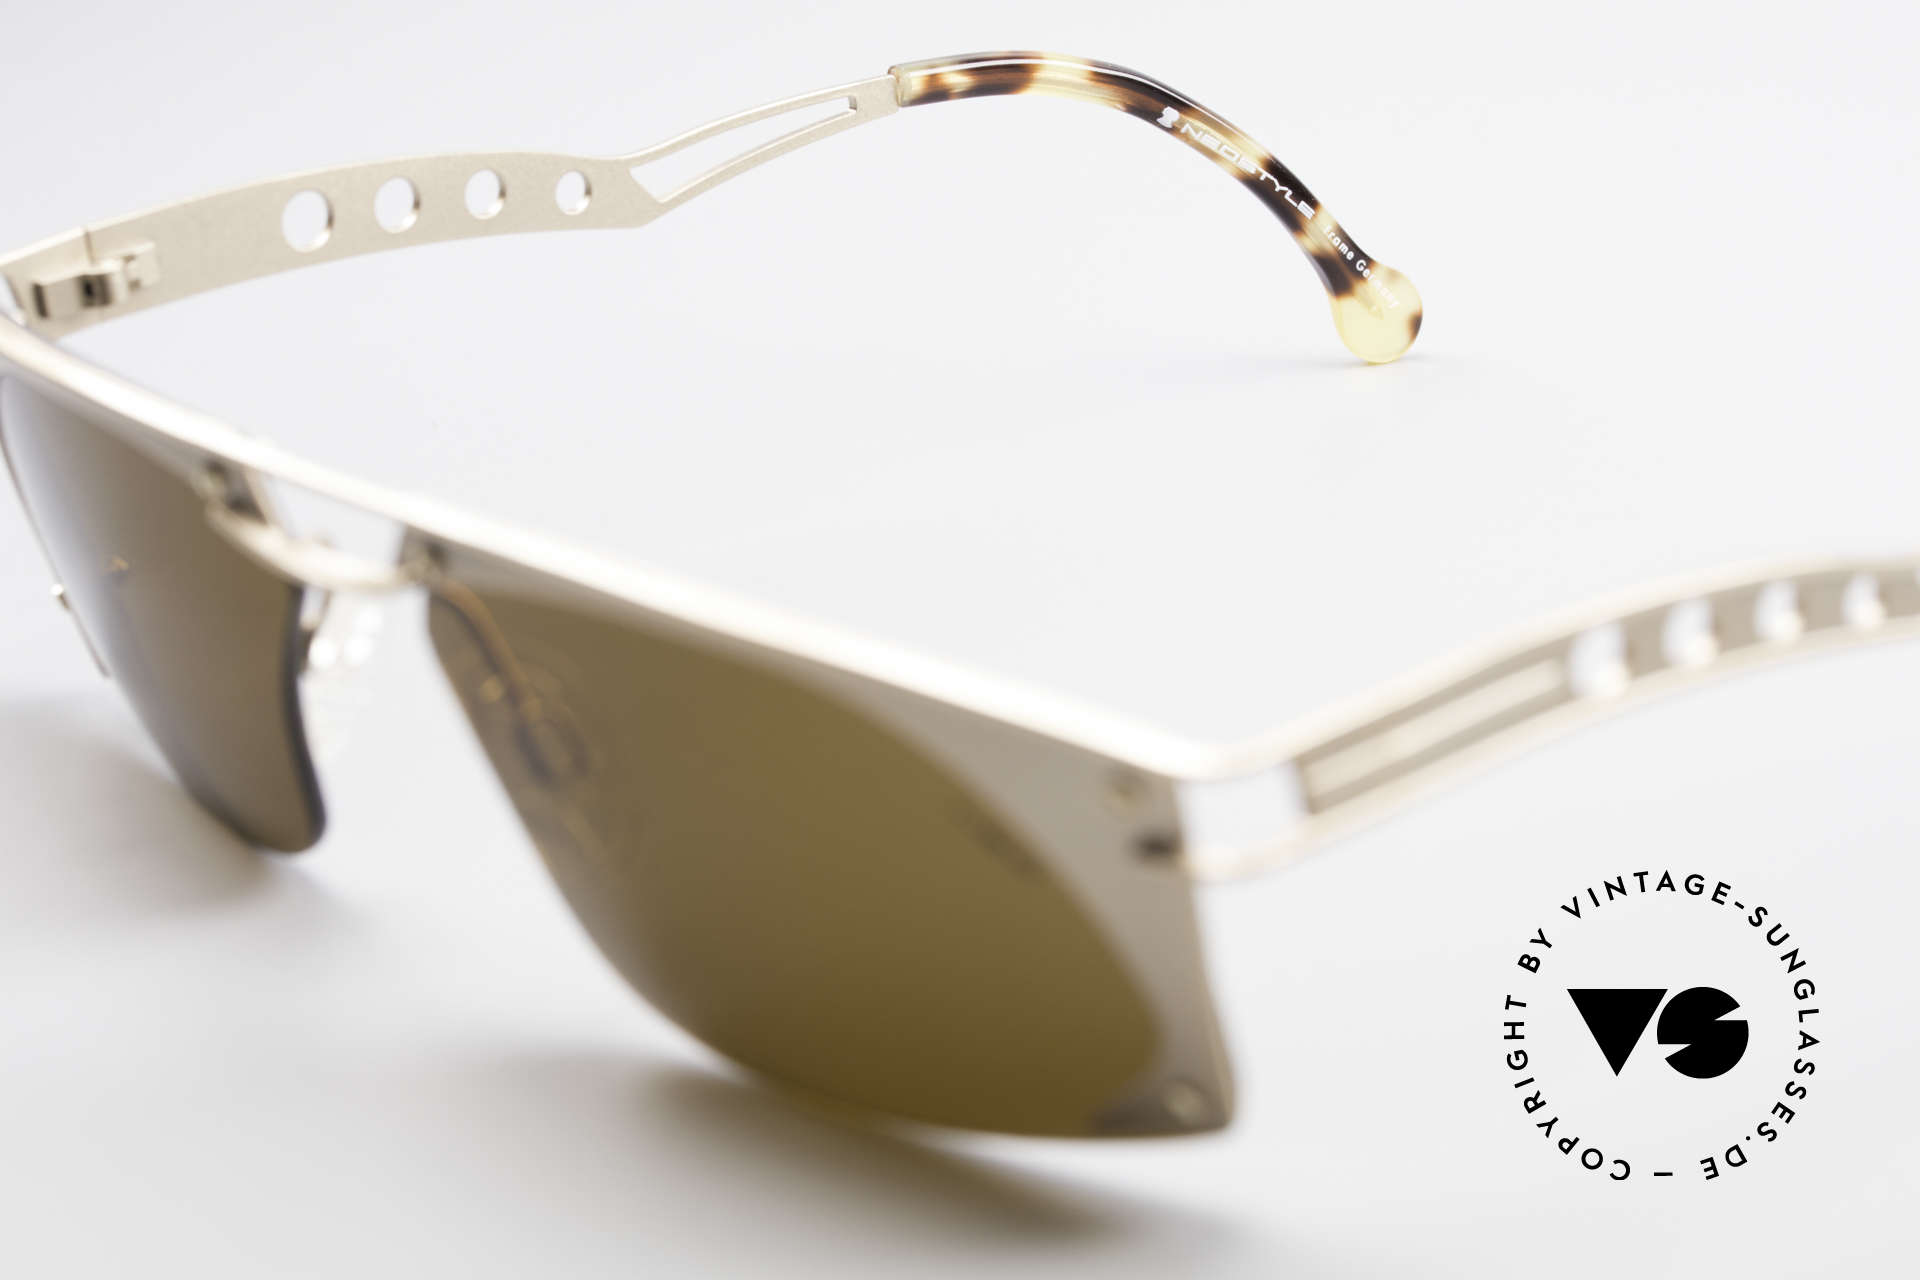 Neostyle Holiday 968 Vintage Steampunk Sunglasses, unworn (like all our old 90's designer sunglasses), Made for Men